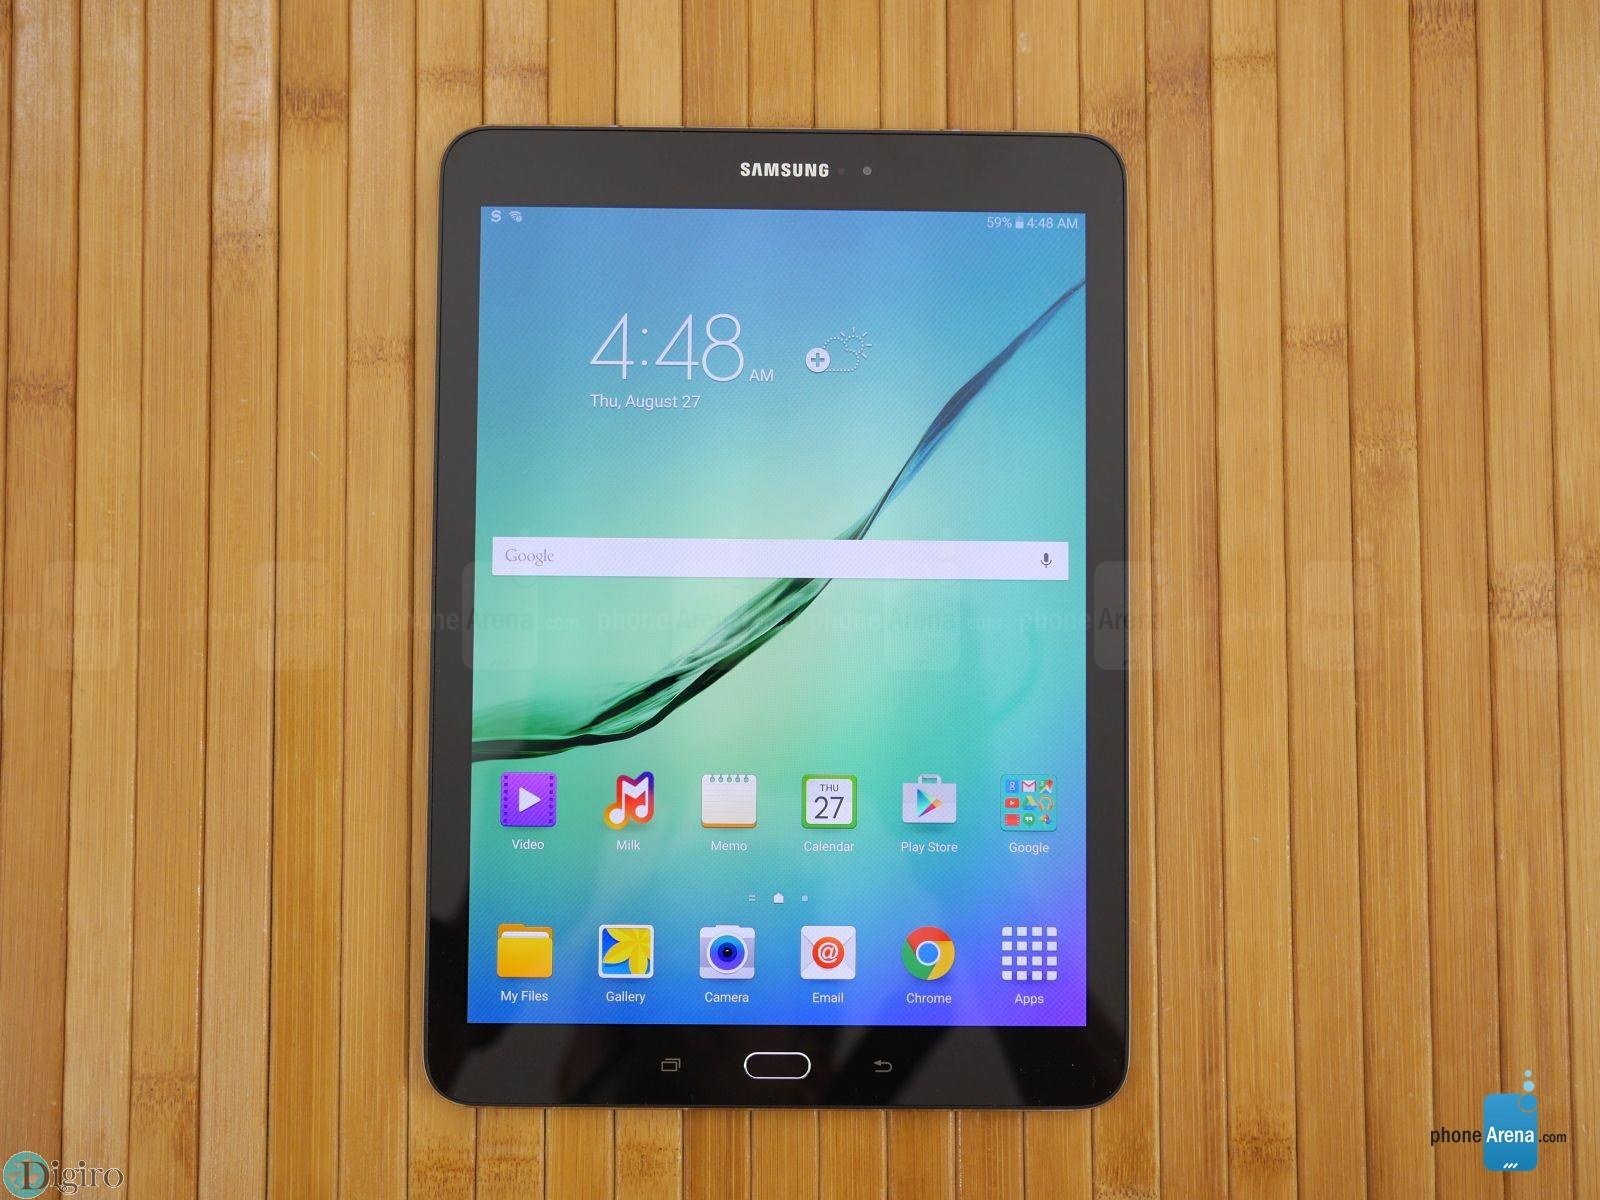 Samsung-Galaxy-Tab-S2-9.7-inch-hands-on--amp-unboxing (5)